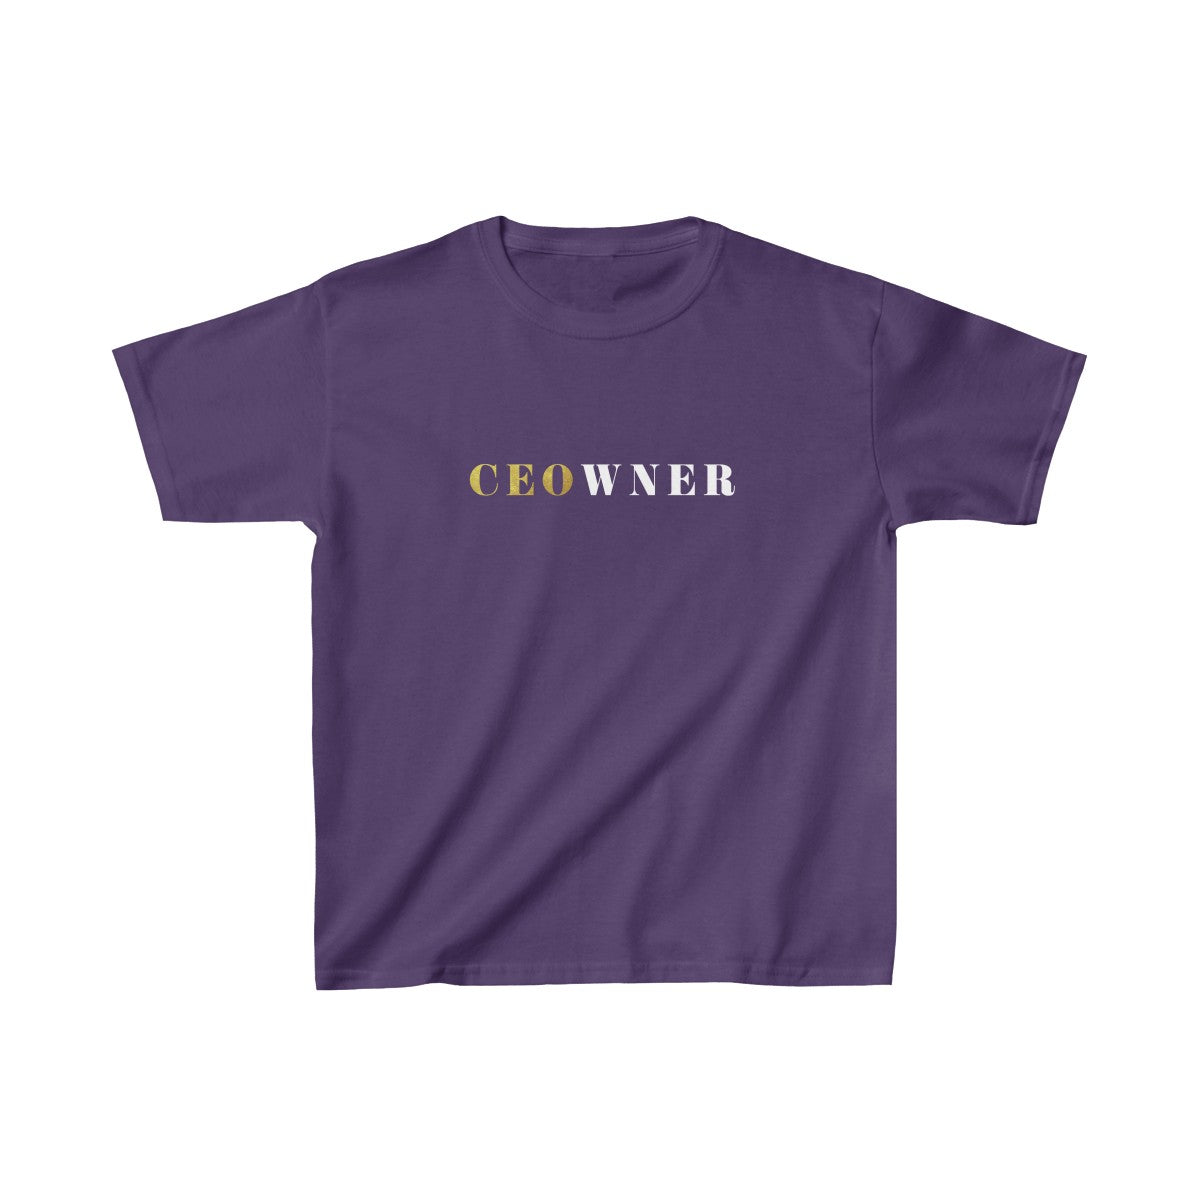 CEOwner™ Kids Heavy Cotton Tee